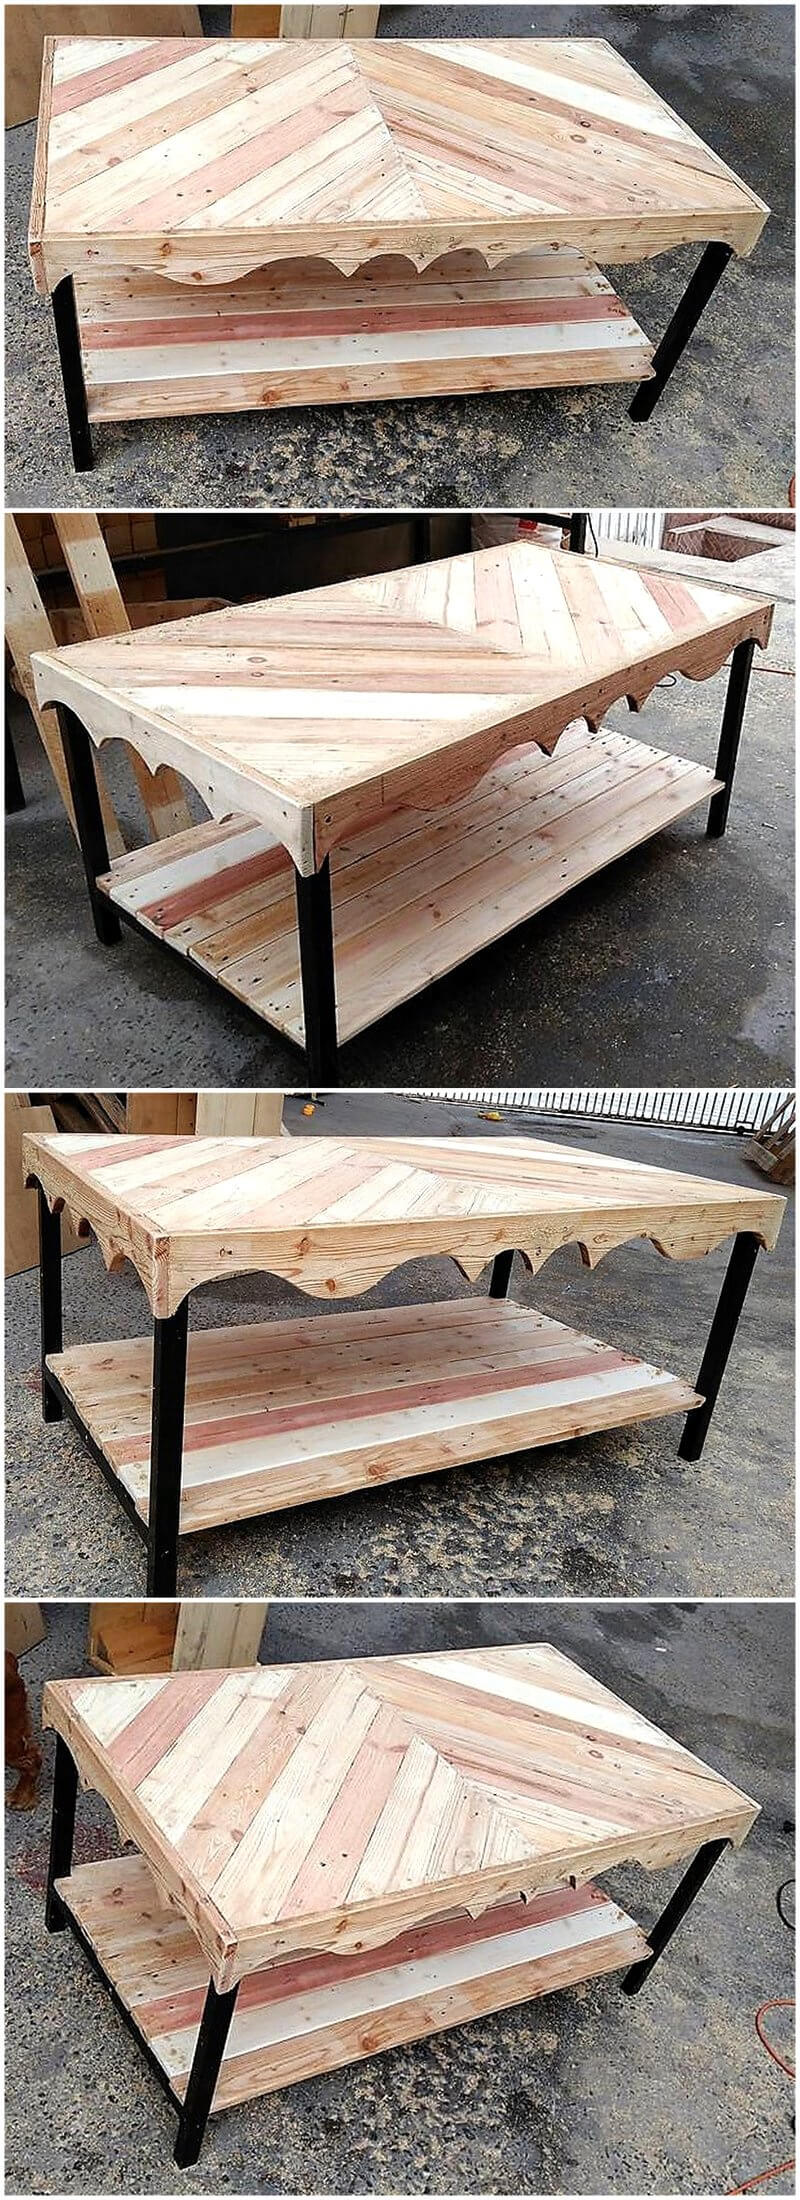 reclaimed pallets wooden table